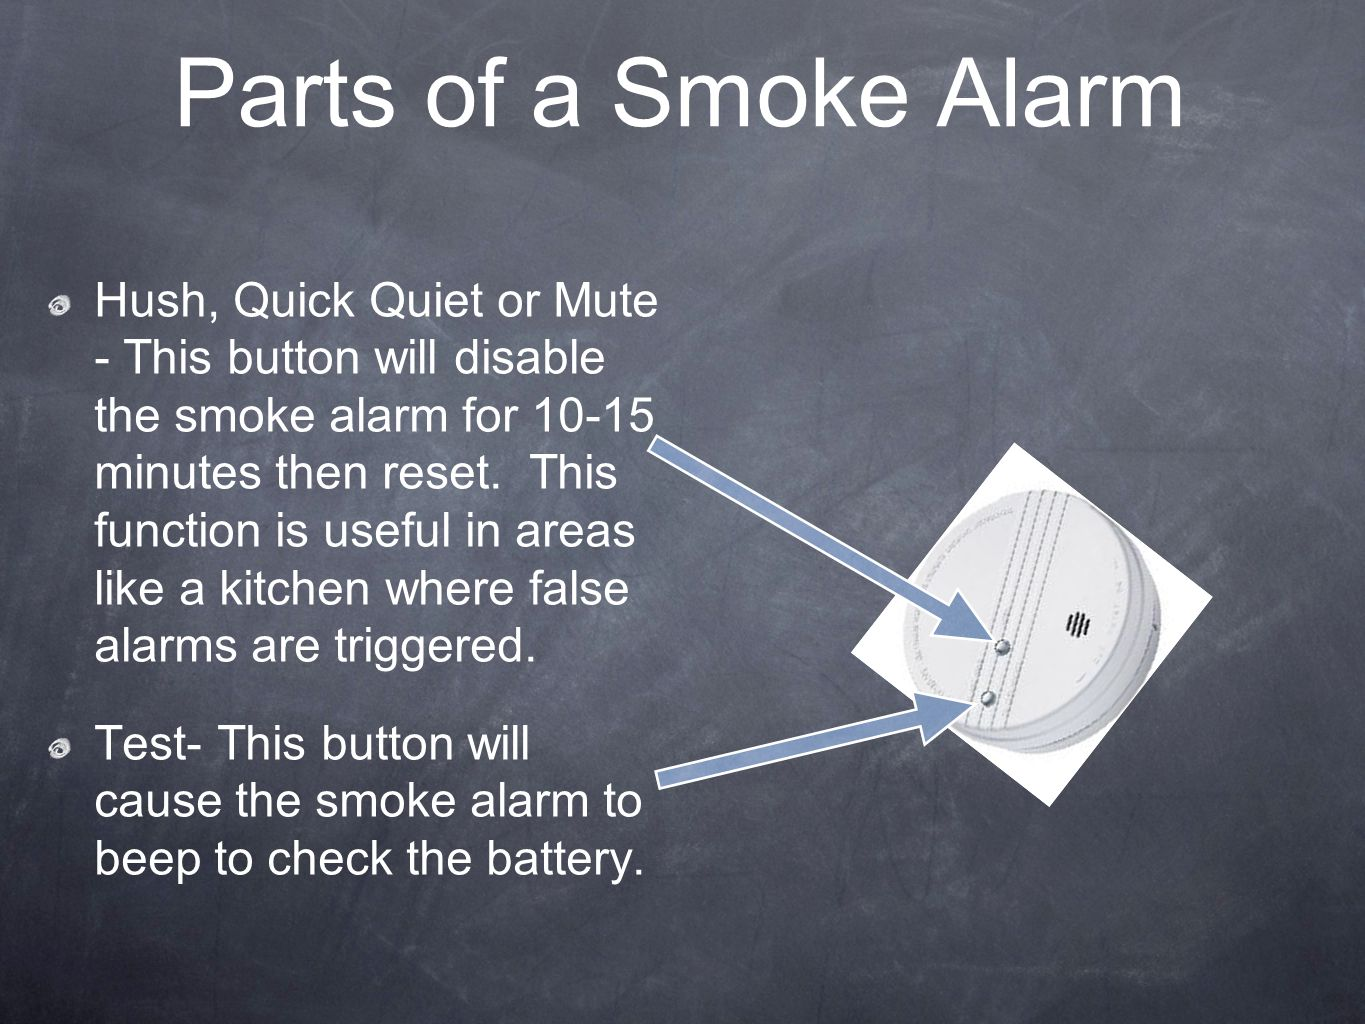 Parts of a Smoke Alarm Hush, Quick Quiet or Mute - This button will disable the smoke alarm for 10-15 minutes then reset. This function is useful in a